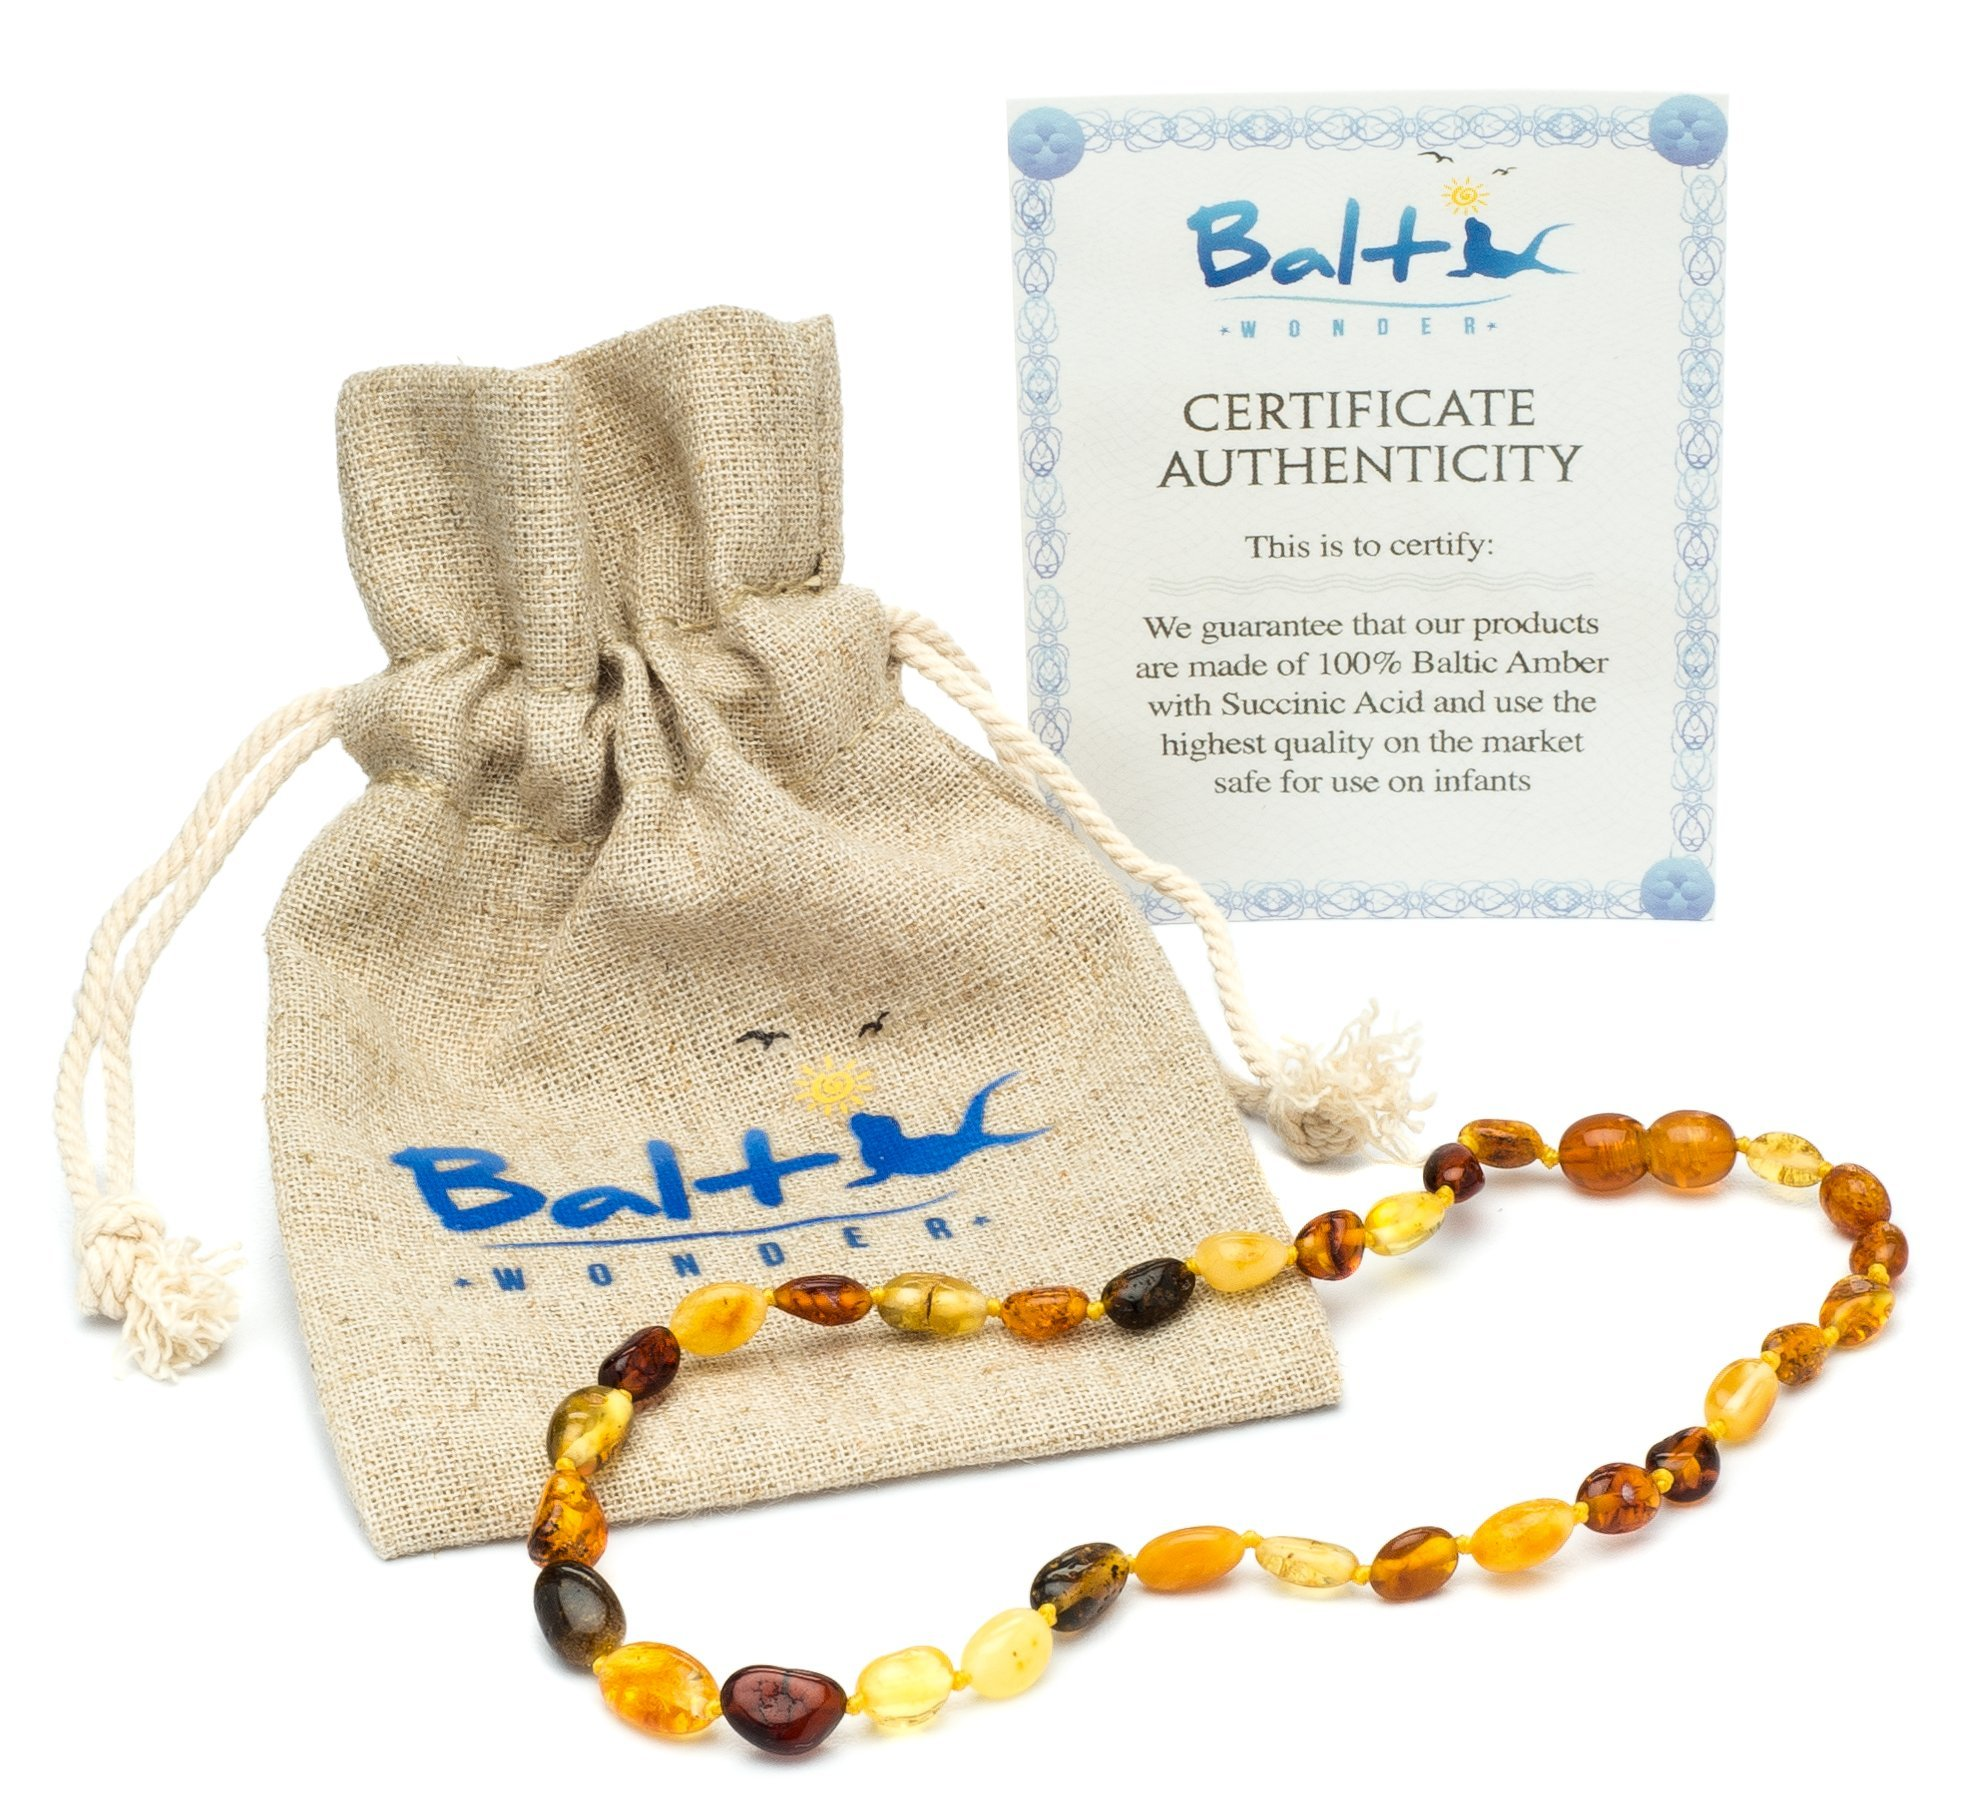 Amber Teething Necklace for Babies (Unisex) - Anti Flammatory, Drooling & Teething Pain Reduce Properties - Certificated Natural Oval Baltic Jewelry with the Highest Quality Guaranteed.